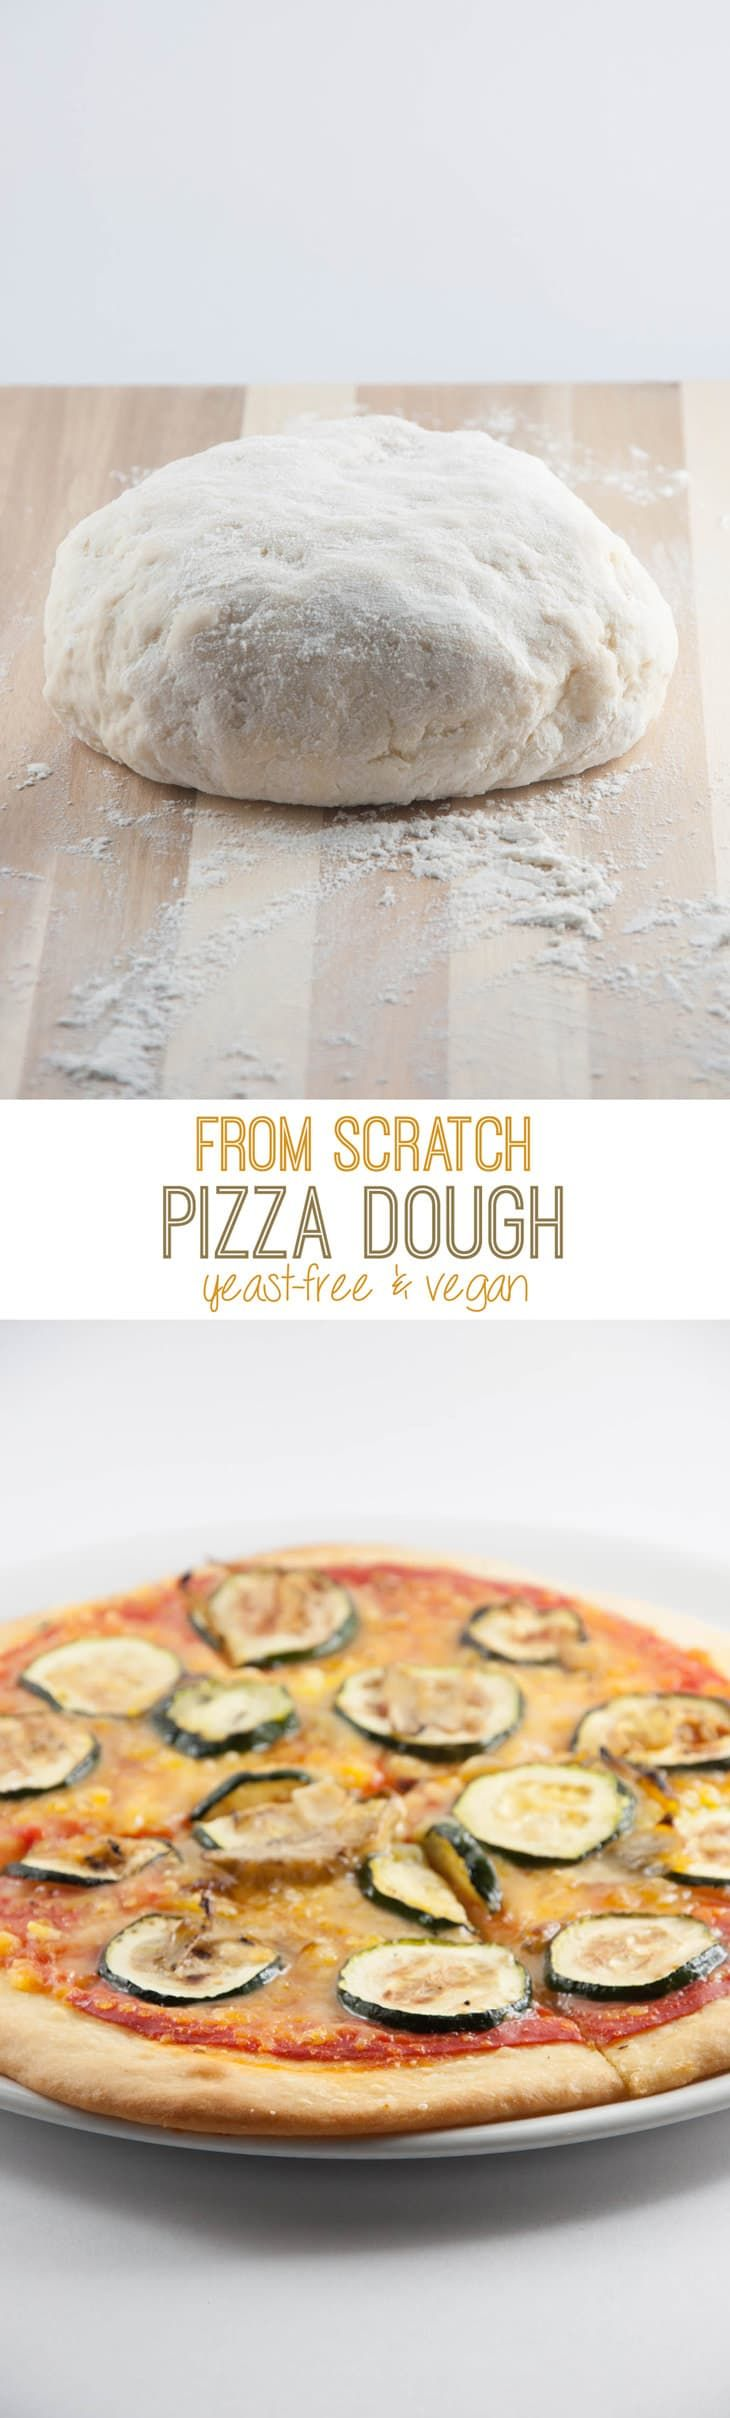 Recipe for a yeast-free vegan Pizza Dough from scratch ( + topping ideas... ) made out of only 5 ingredients! No yeast = no wait time = spontaneous pizza!